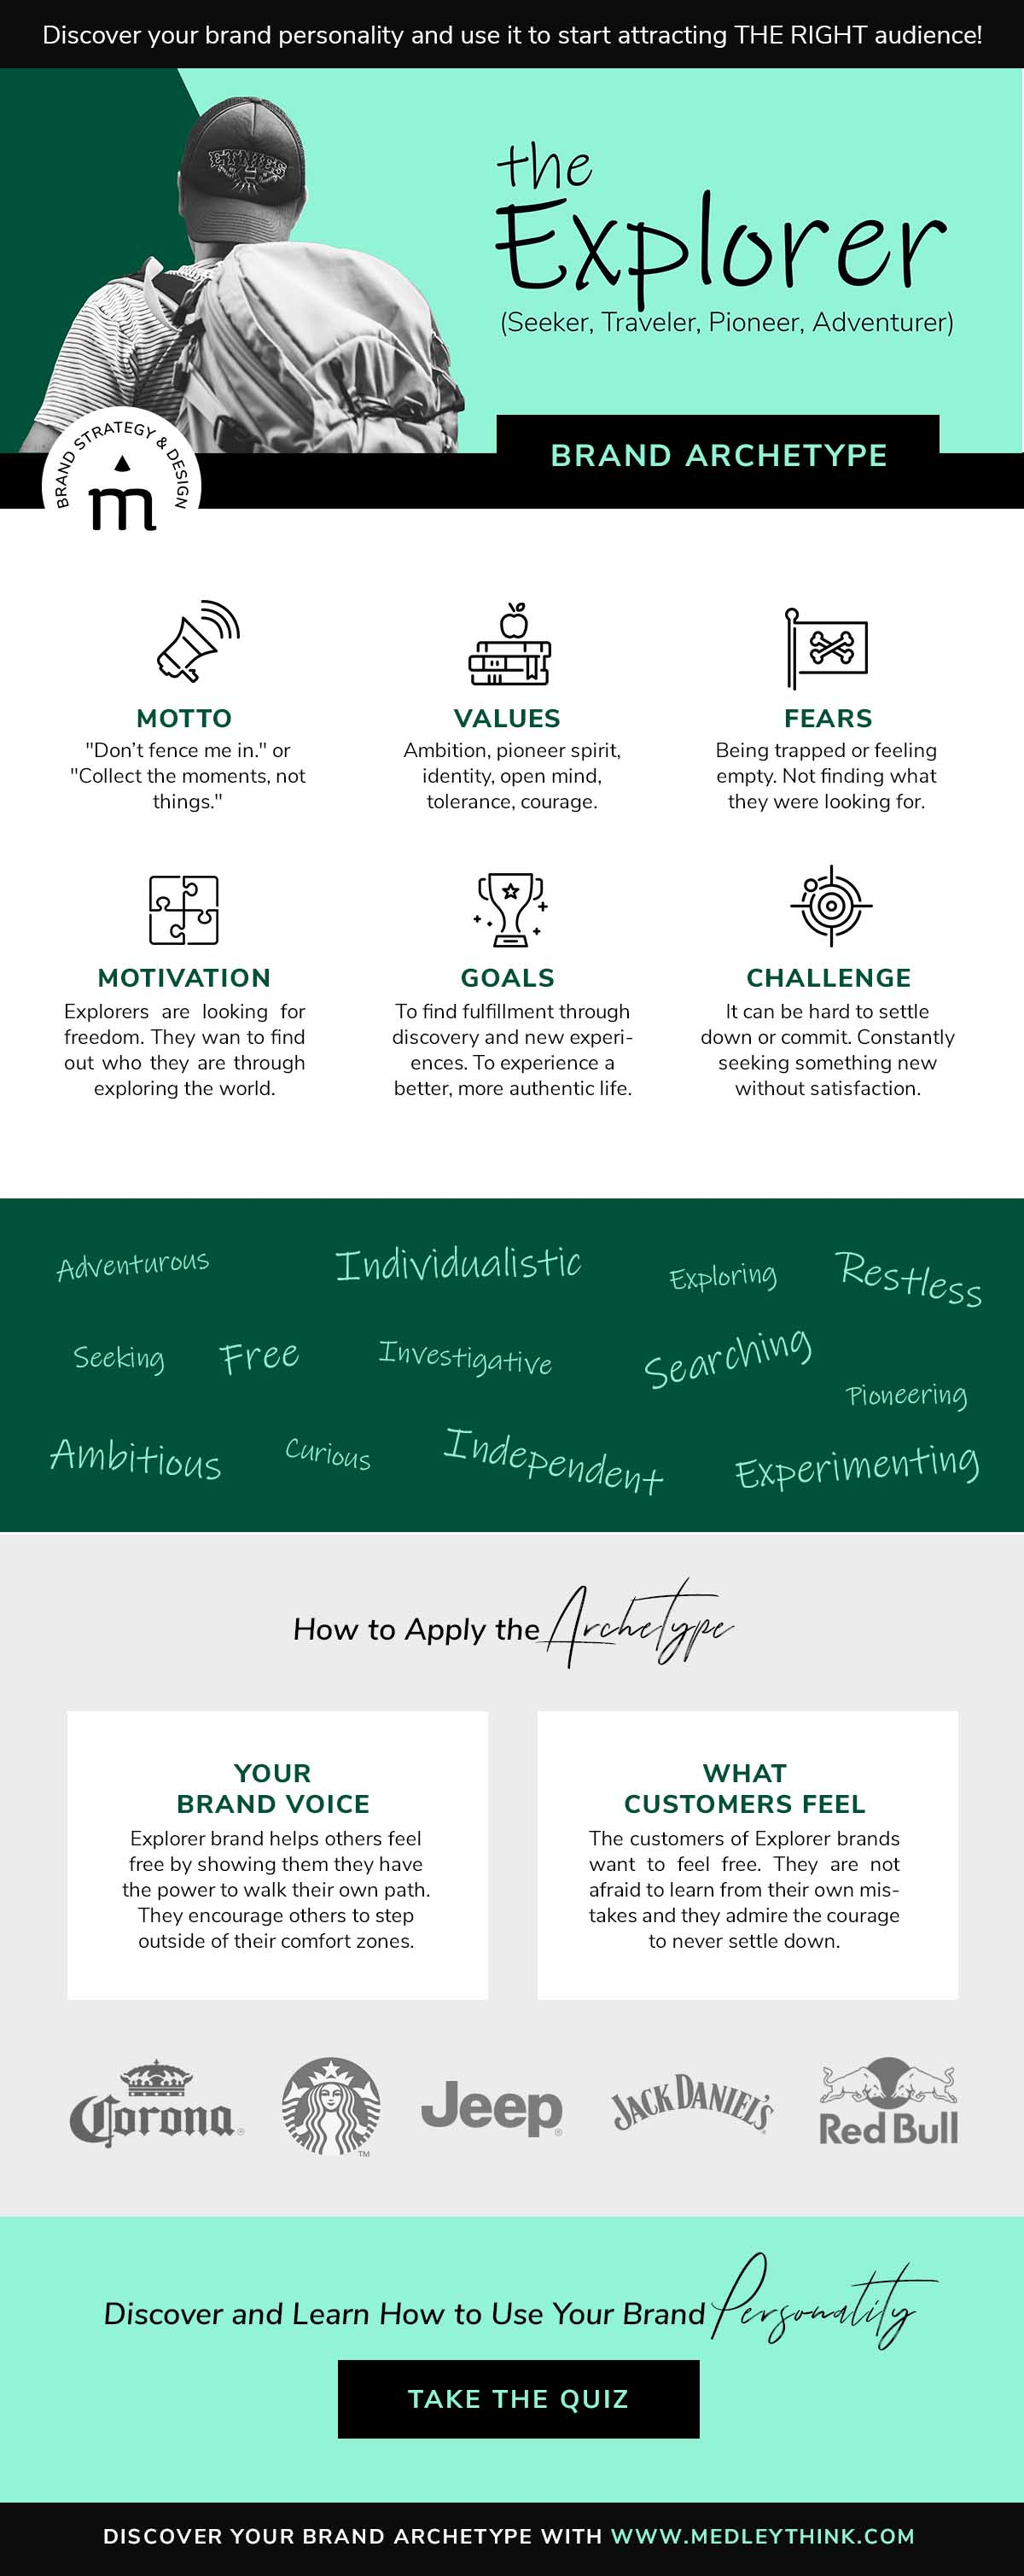 Explorer Brand Archetype // Get confident about your brand personality